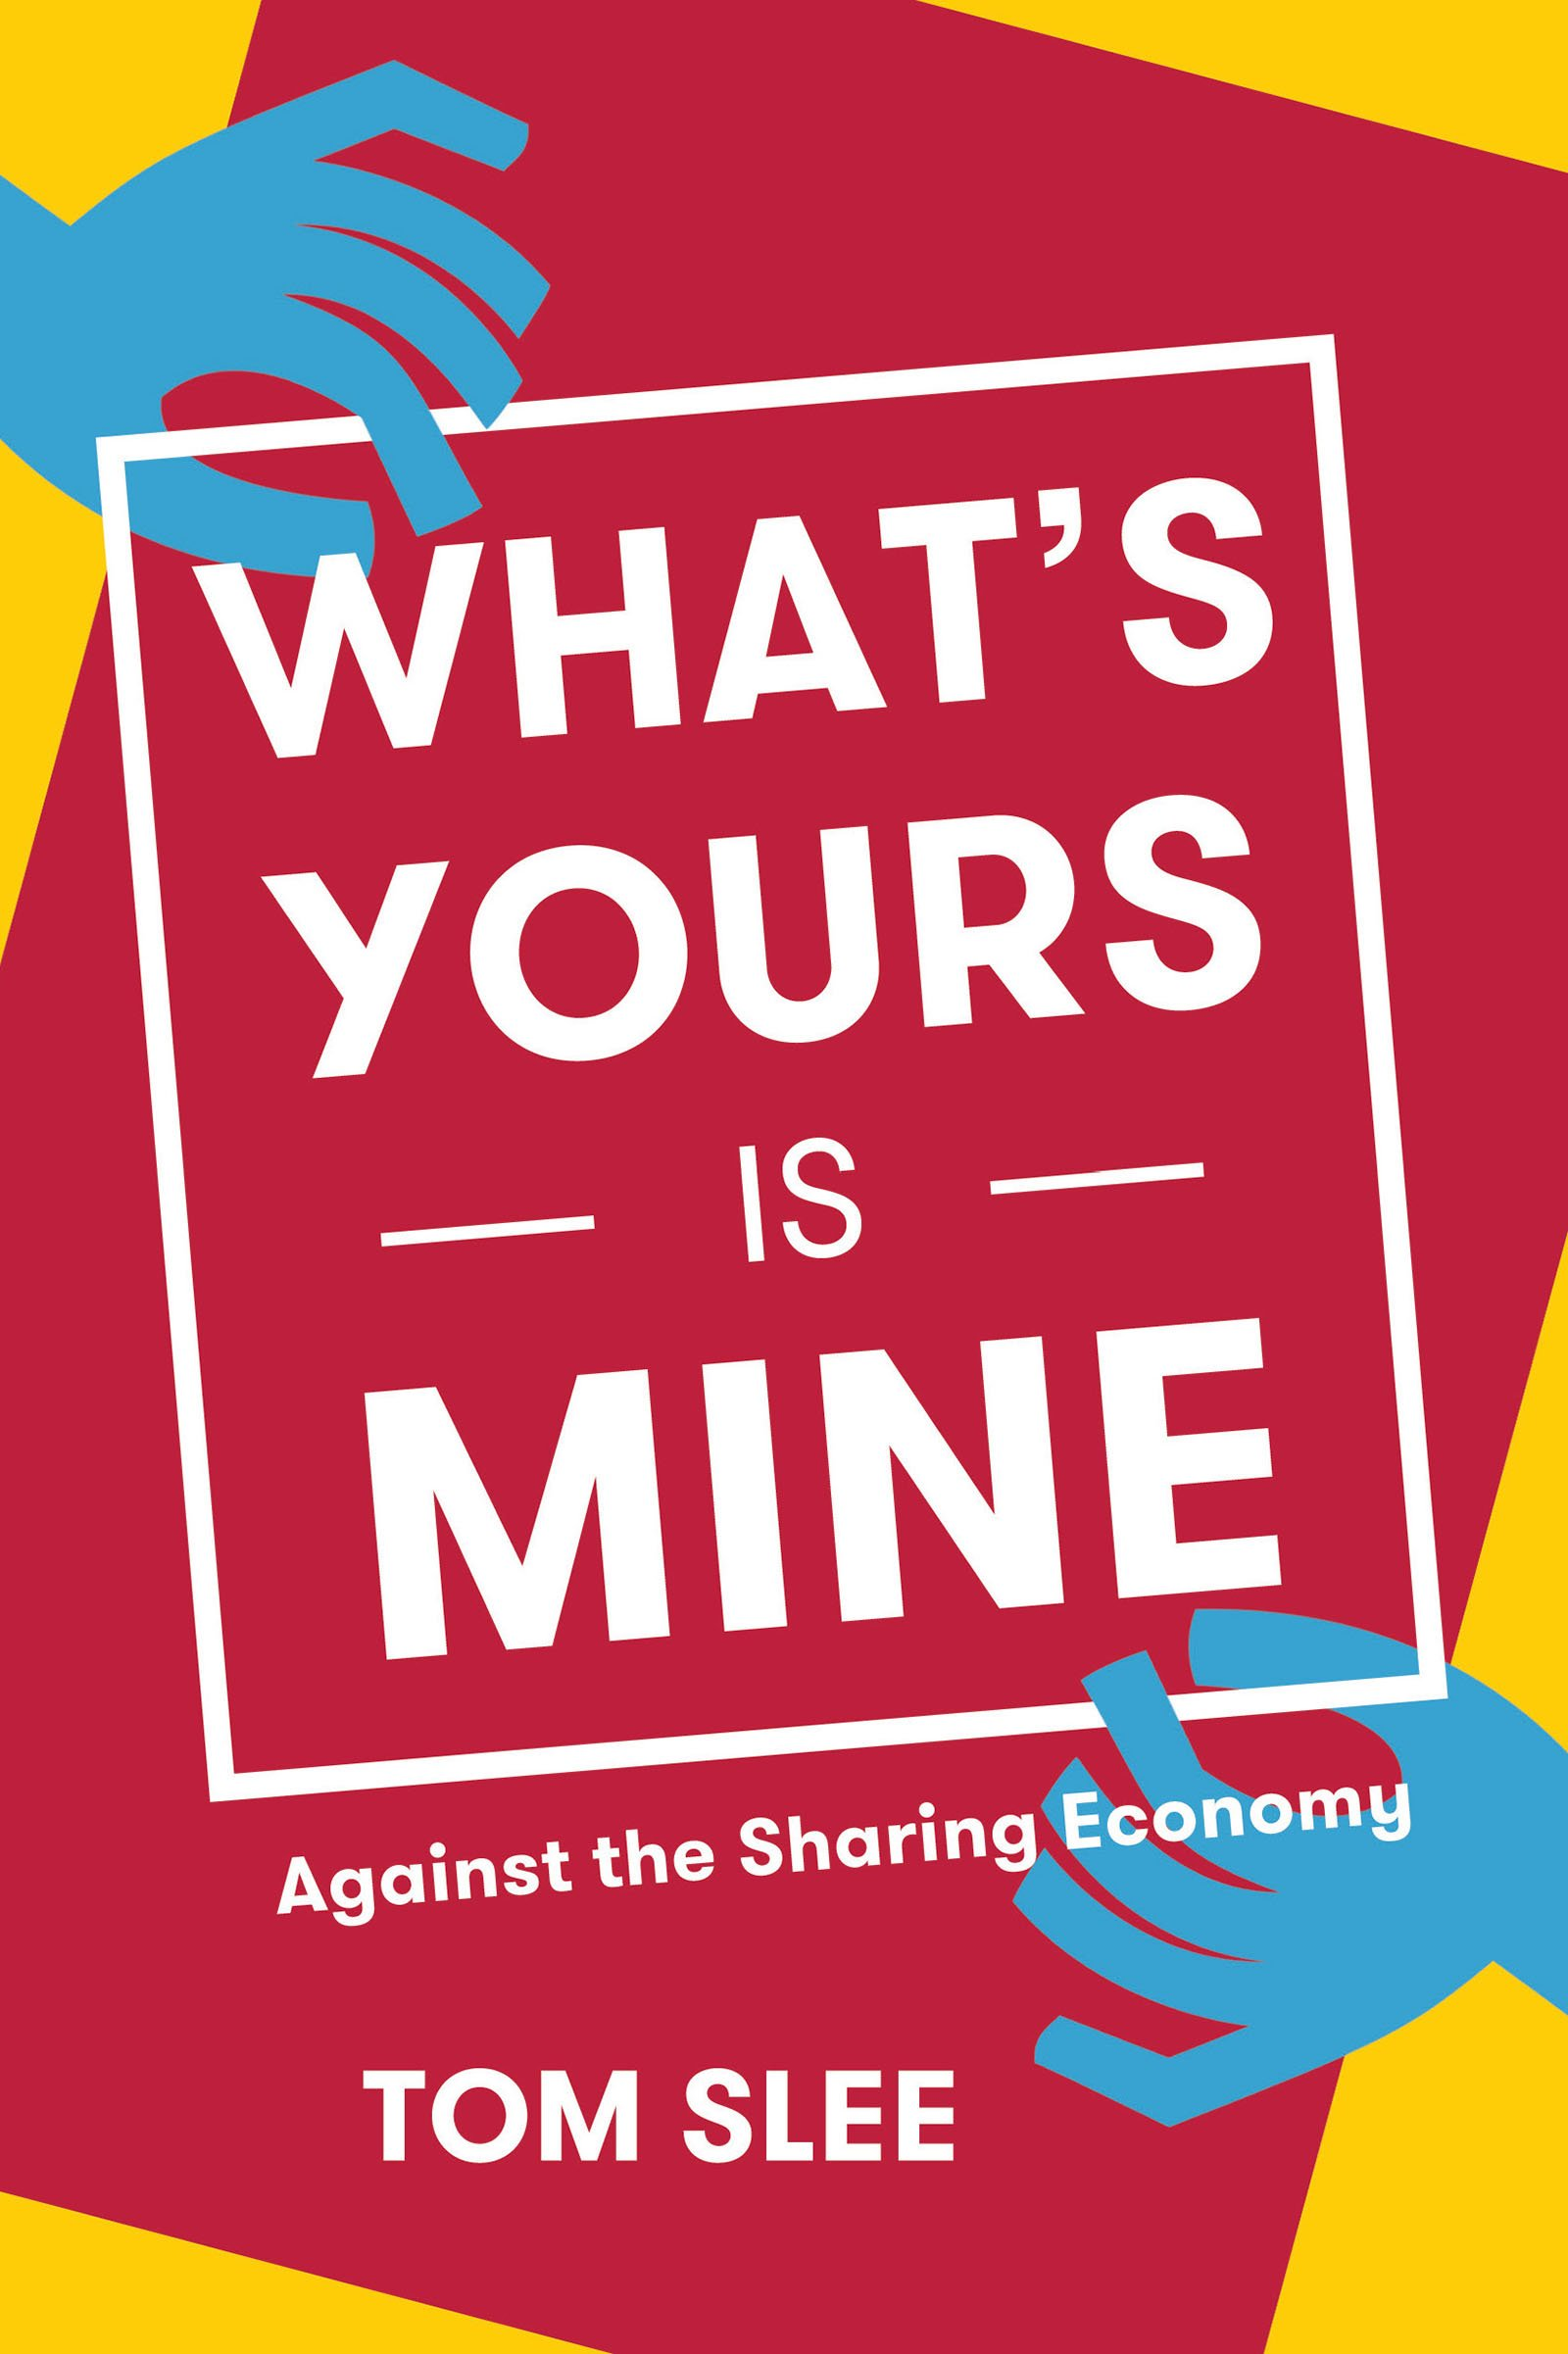 Whats yours is mine against the sharing economy tom slee whats yours is mine against the sharing economy tom slee 9781944869373 amazon books fandeluxe Choice Image